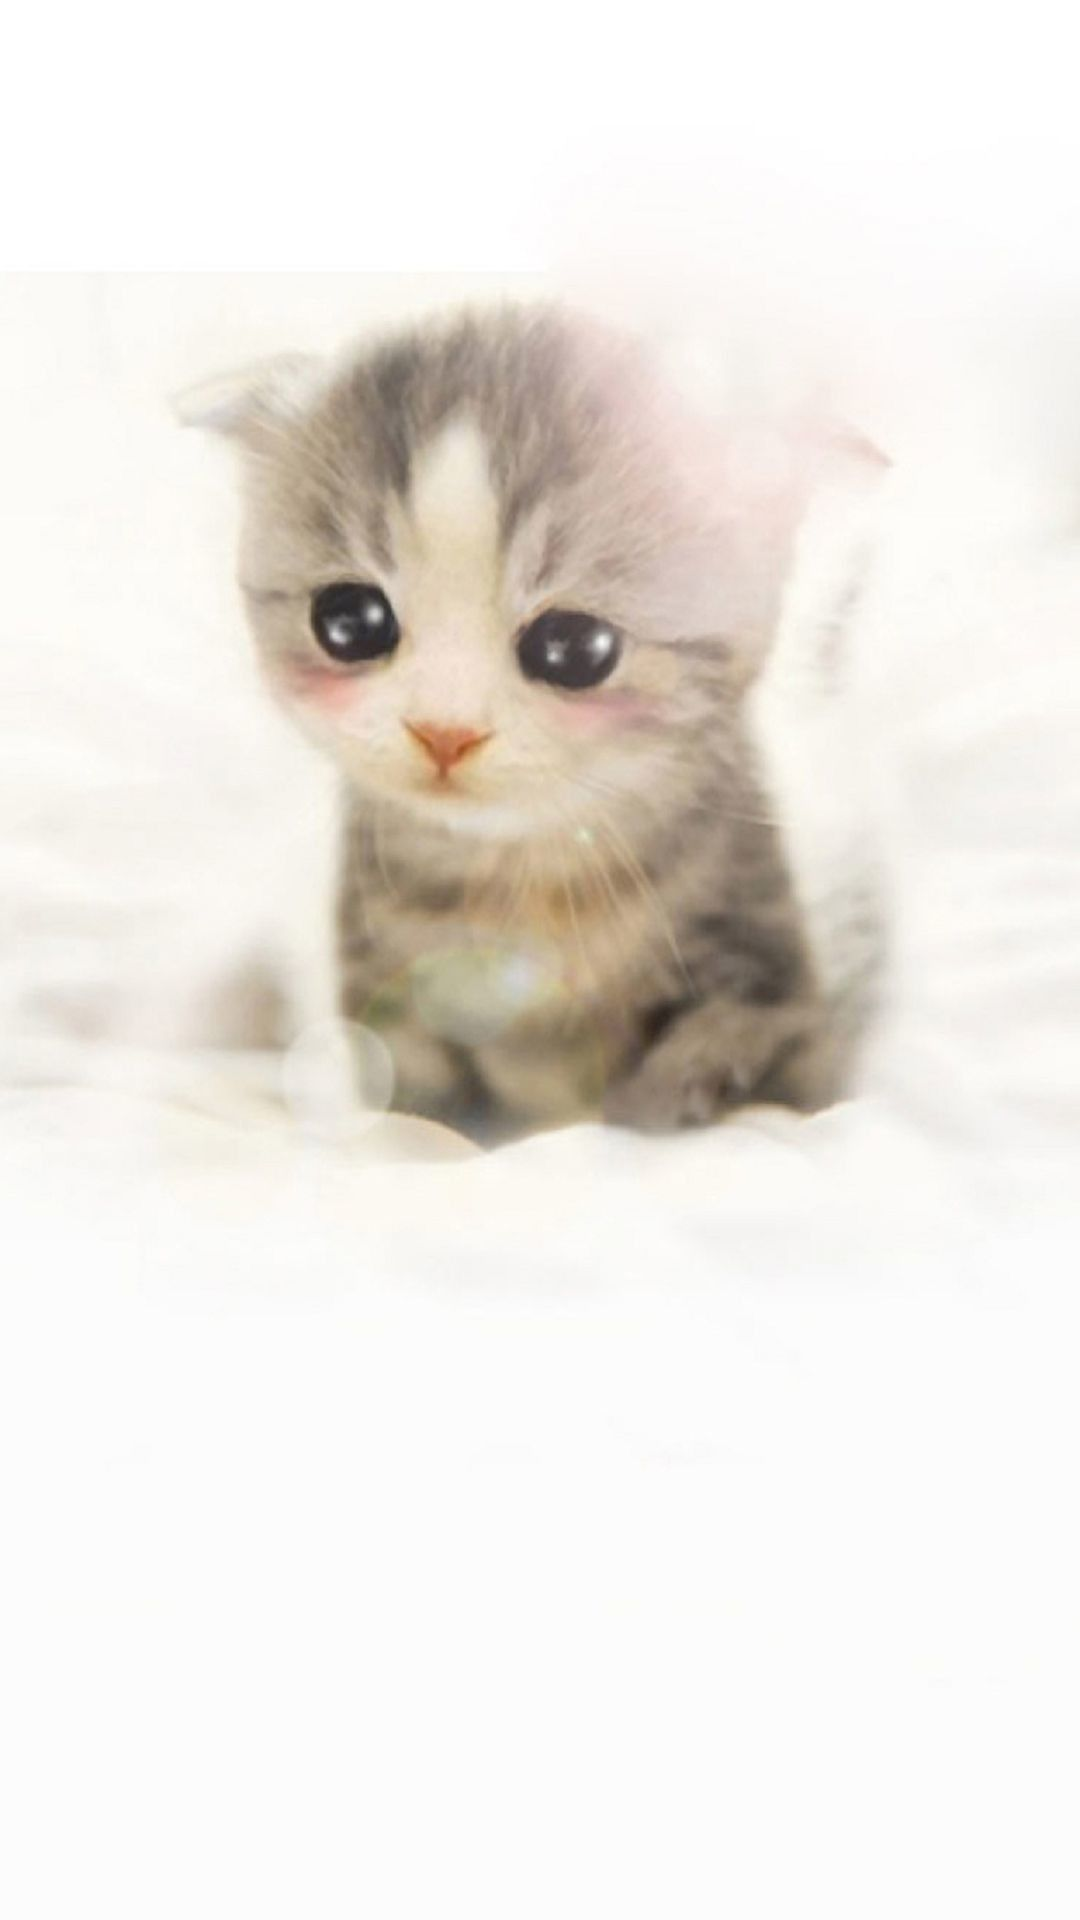 Wallpaper iphone cute cat - 60 Cute Animals Iphone Wallpapers You Would Love To Download